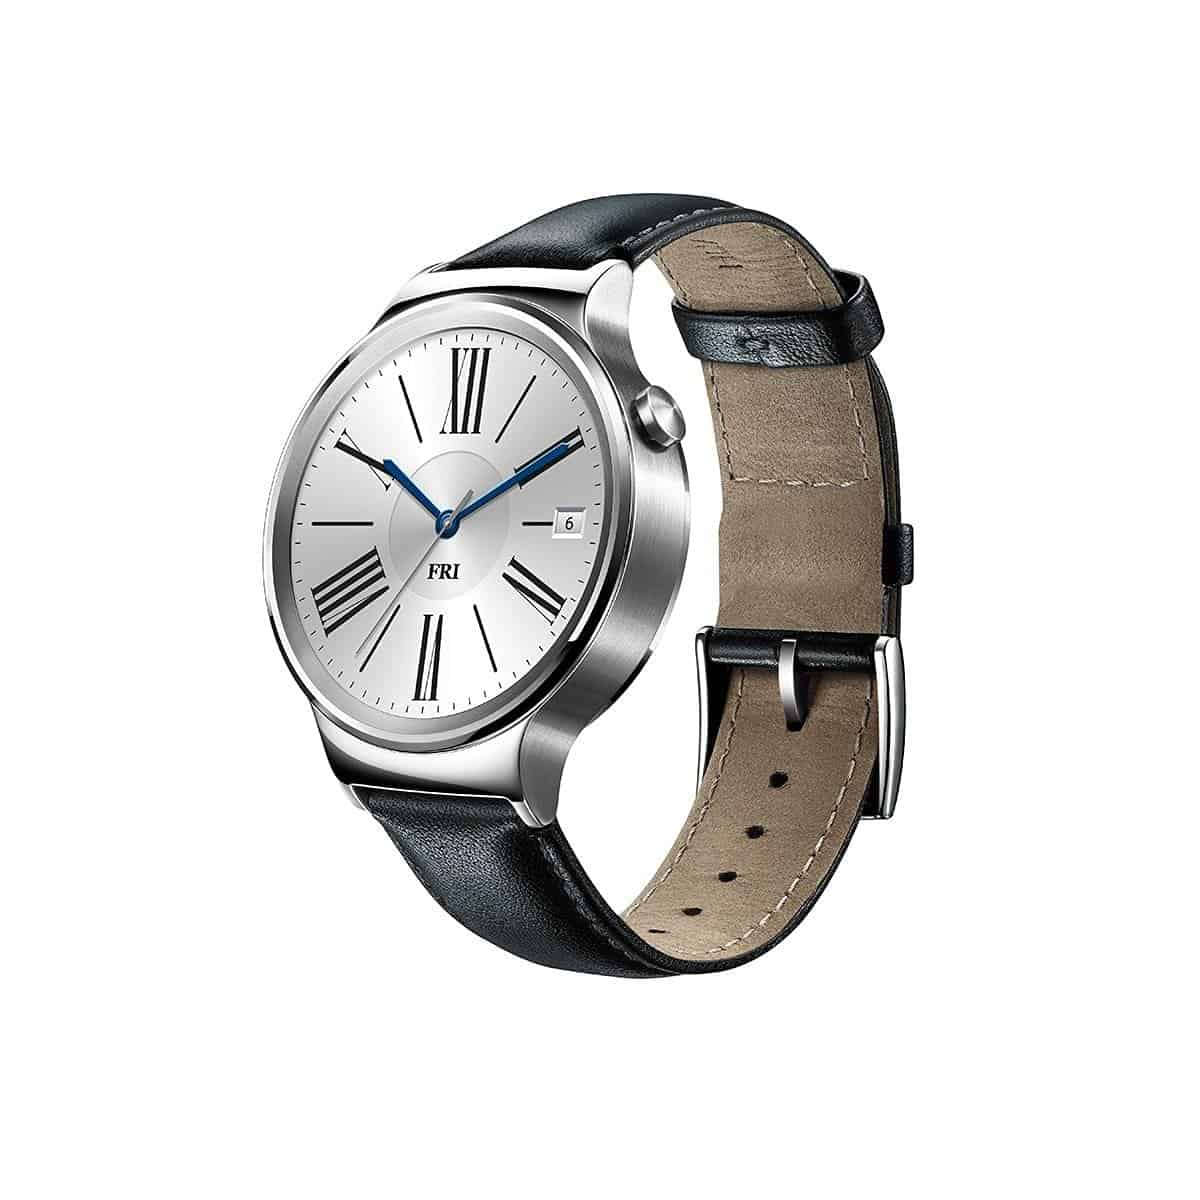 Huawei Watch With Black Suture Leather